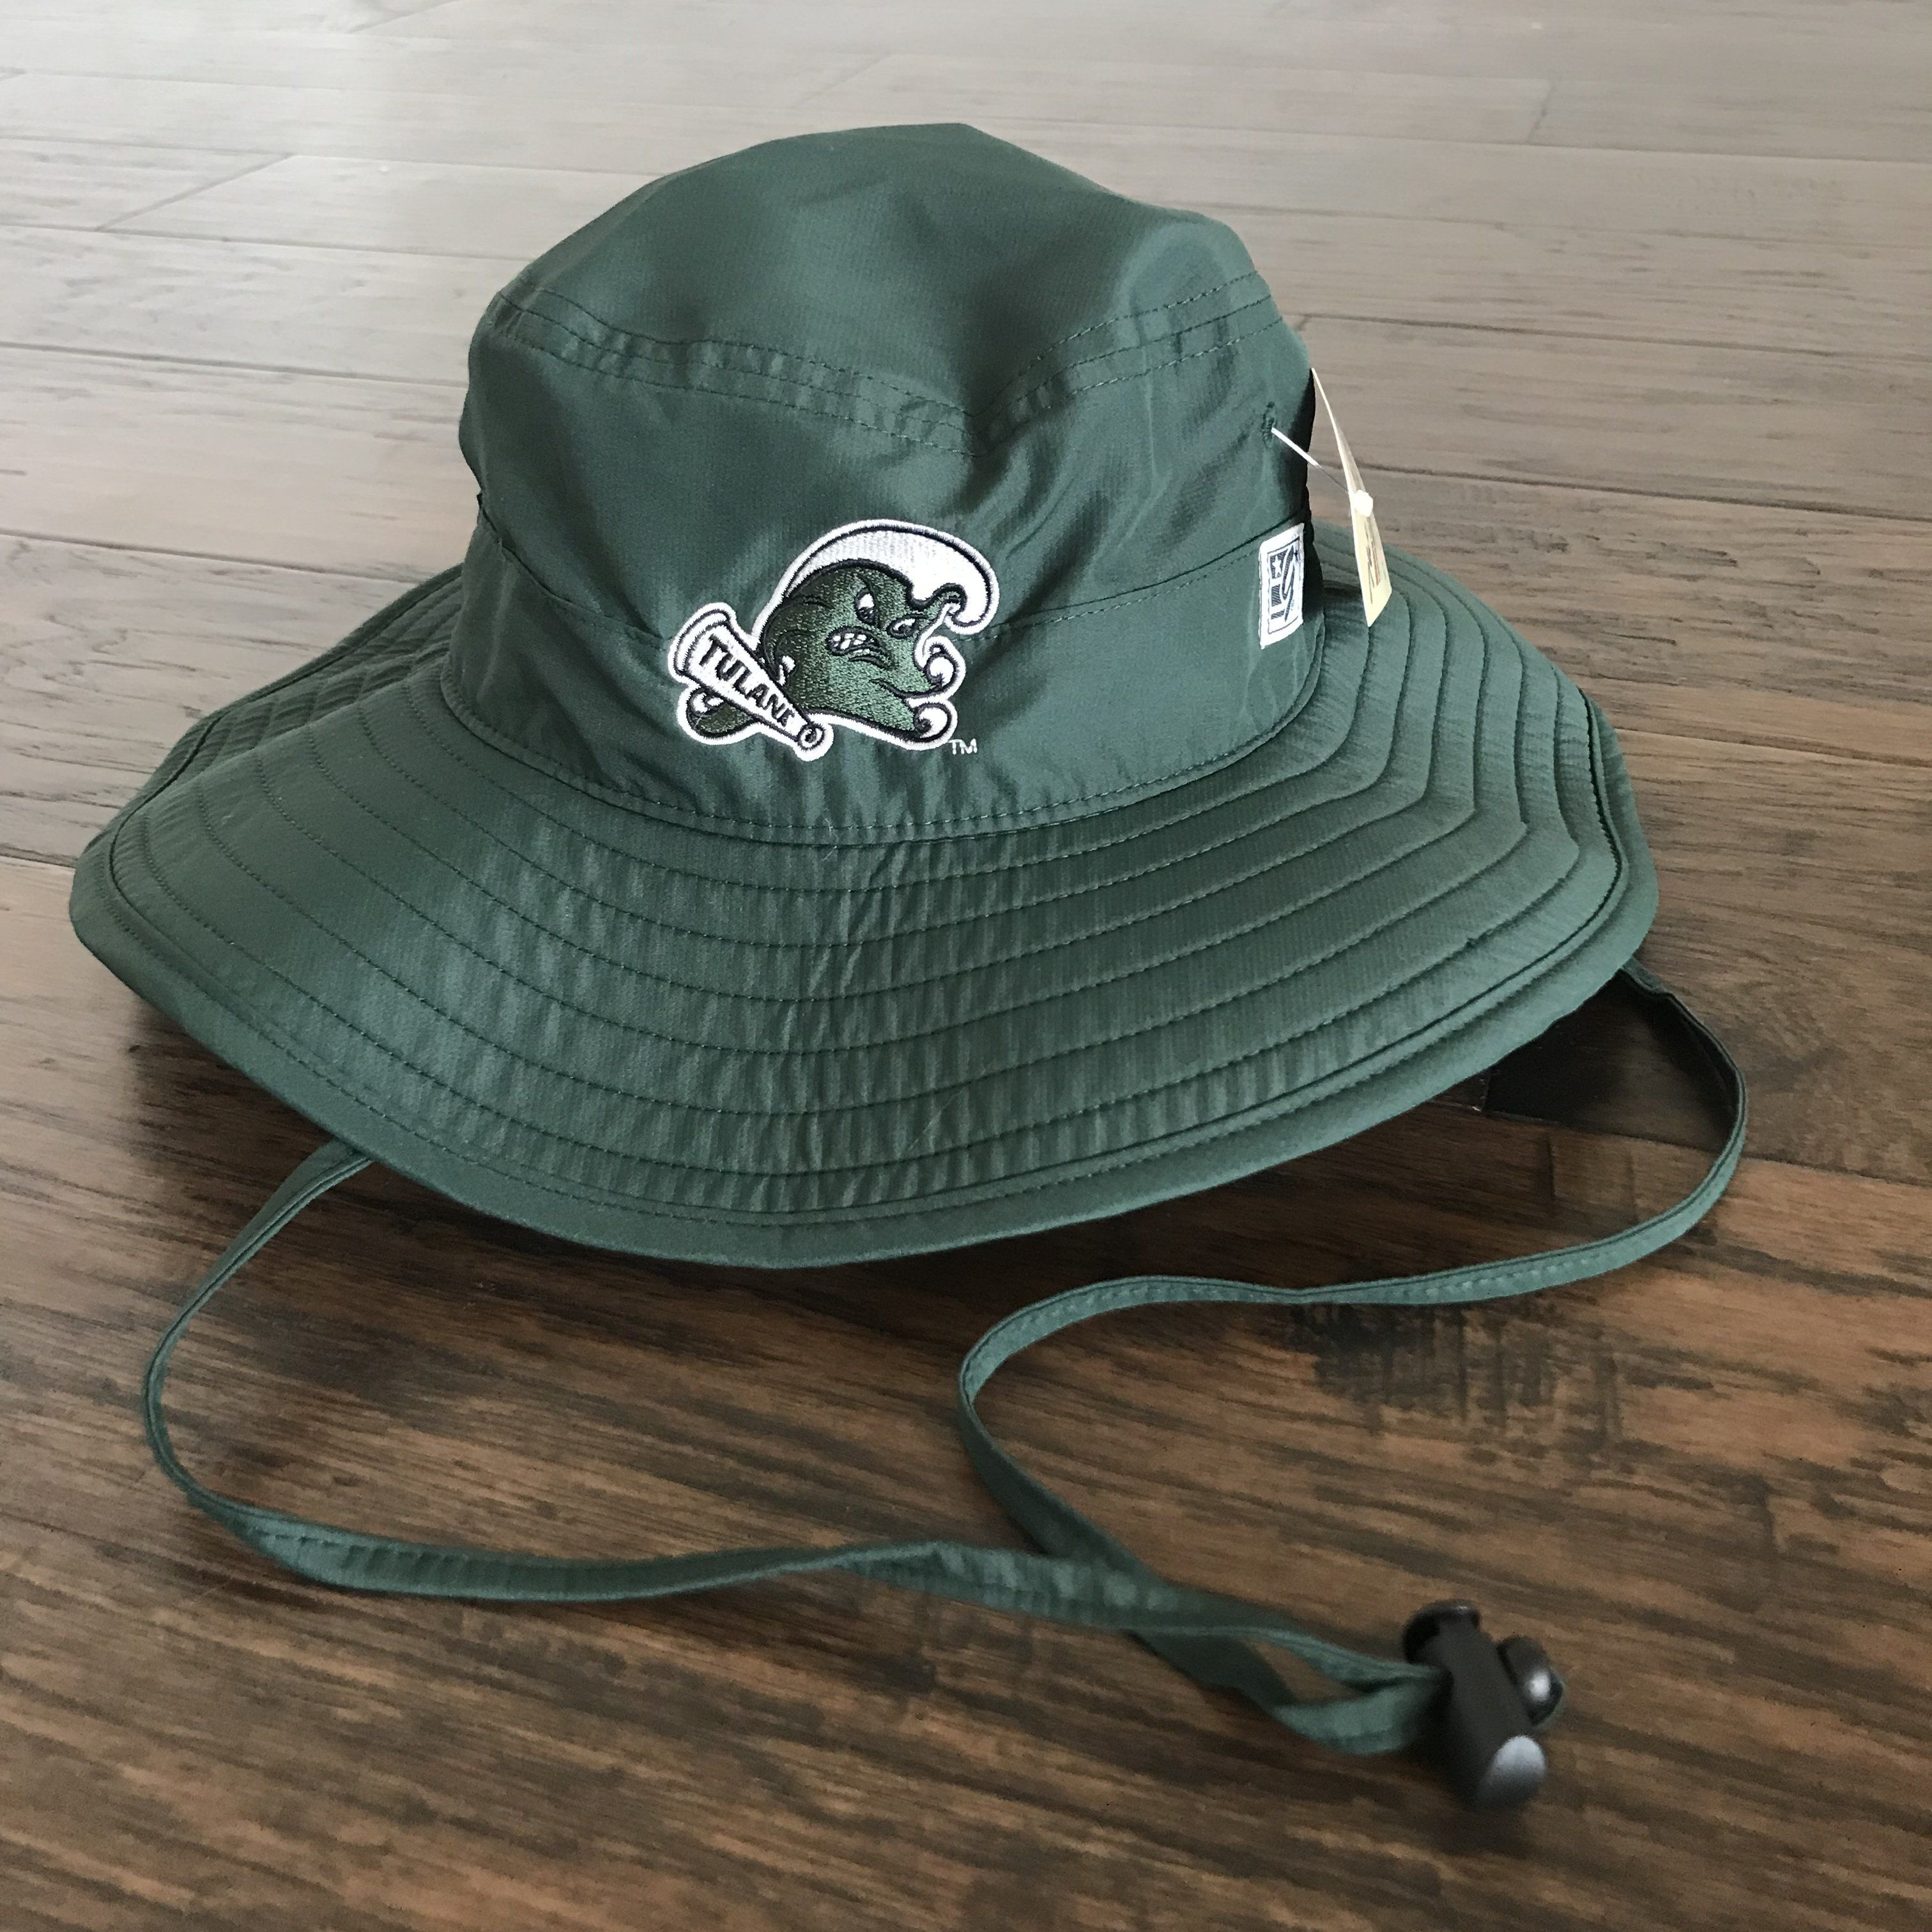 Tulane Angry Wave Bucket Hat Mens Accessories Fashion Hats Popular Hats